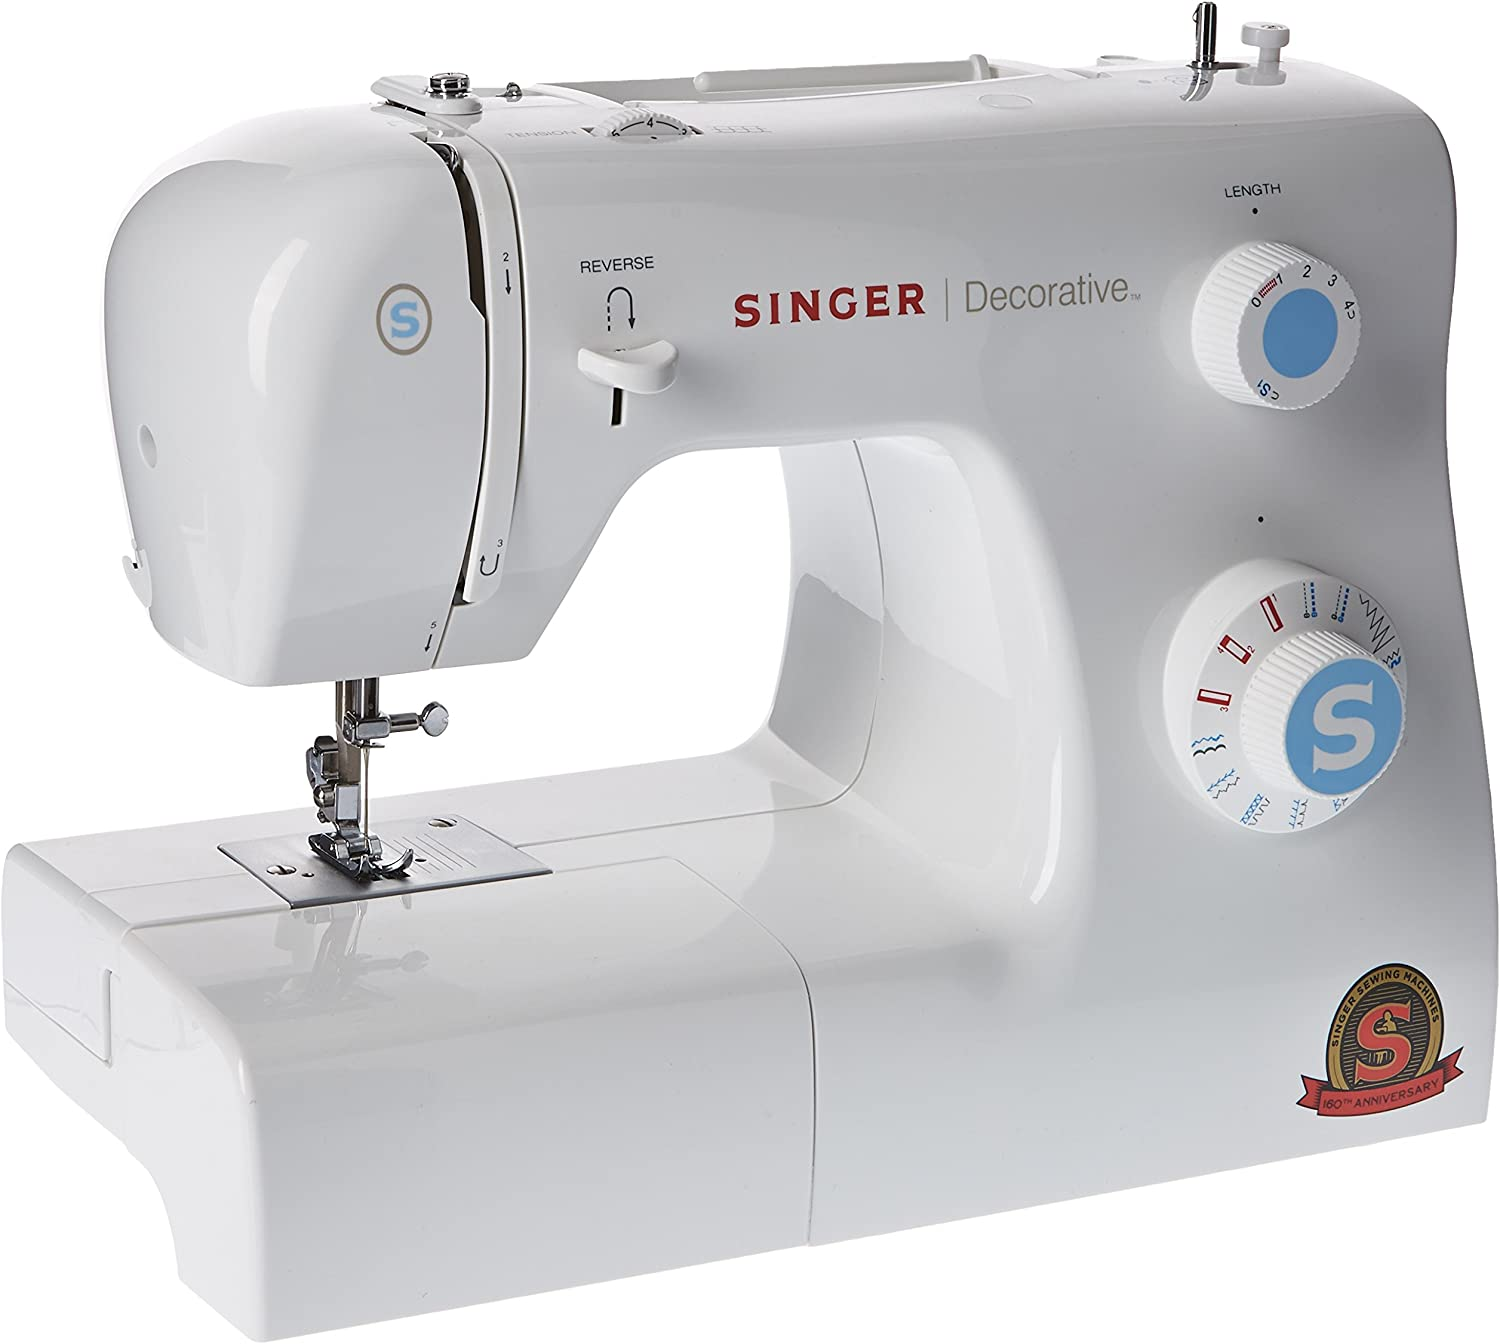 Singer Decorative - Máquina de Coser, (31 Puntadas Ajustables): Amazon.es: Hogar